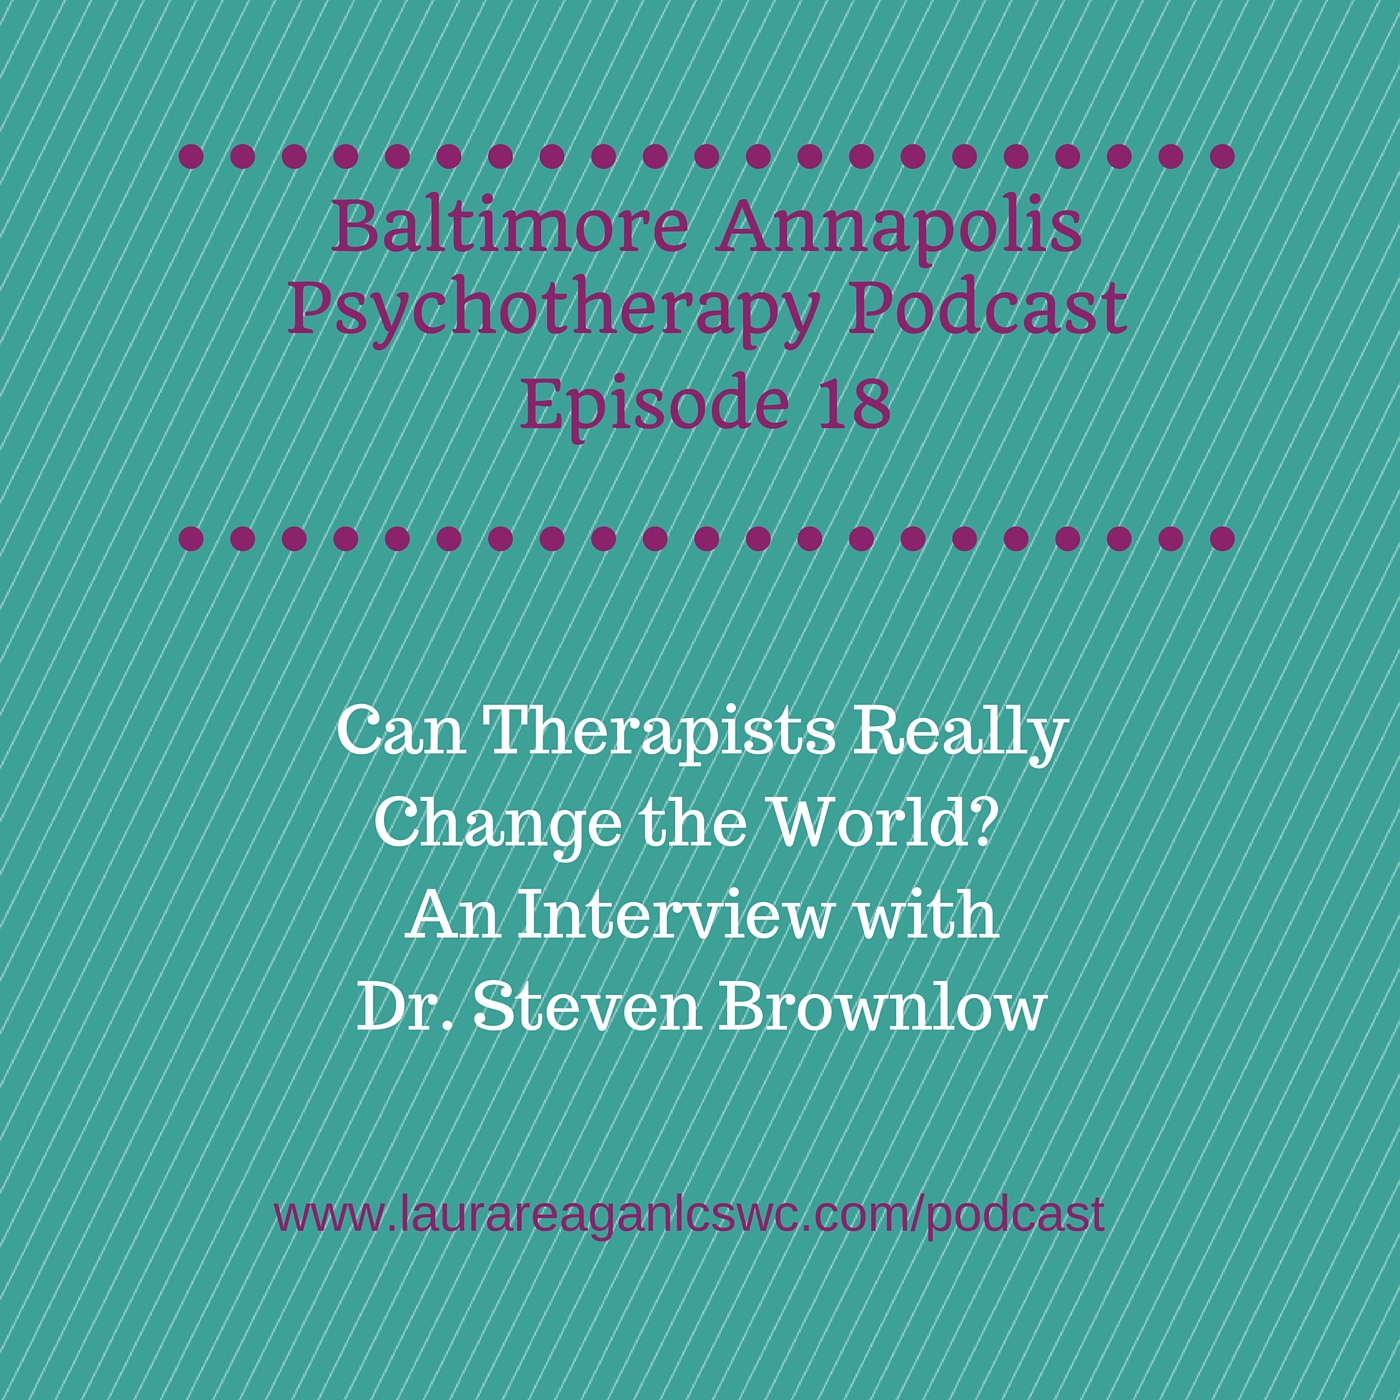 CLICK ON THE IMAGE ABOVE TO LISTEN TO MY PODCAST INTERVIEW WITH DR. STEVEN BROWNLOW!